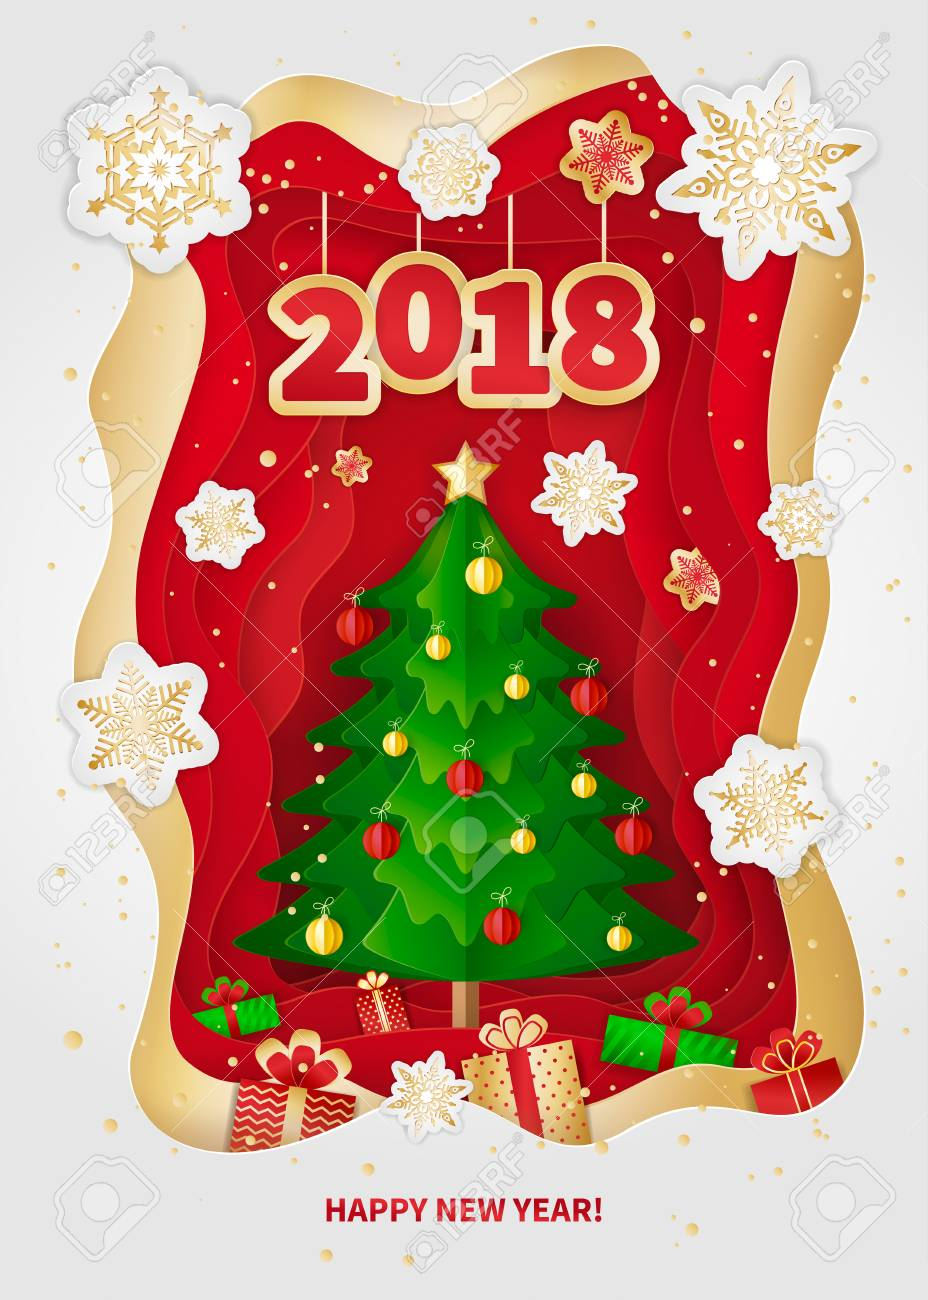 New Year 2018 Greeting Card Design. Christmas Tree, Decorations, Gifts And  Snowflakes.